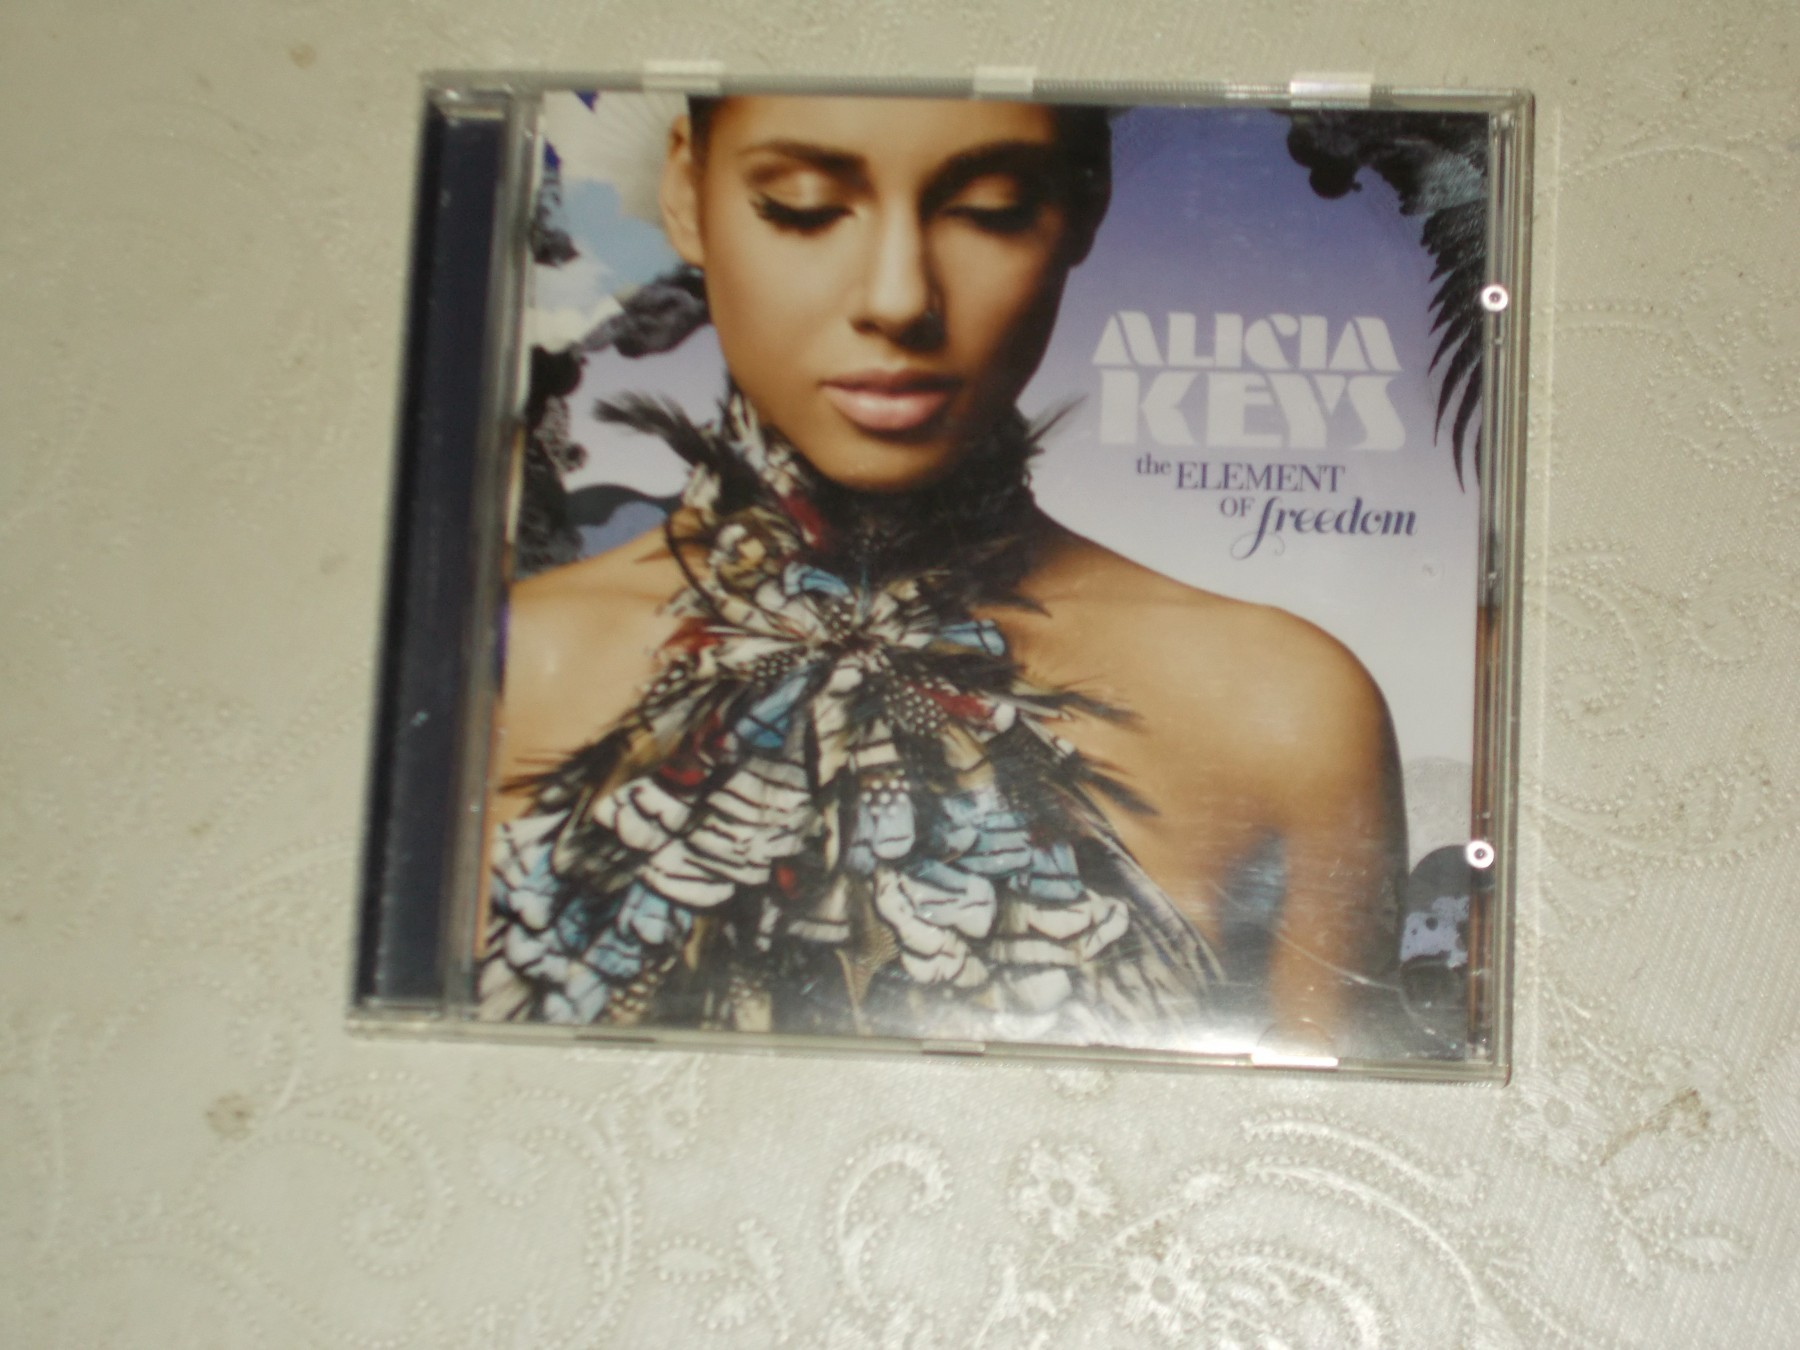 Angela Jane Melini alicia keys ‎– the element of freedom - kupindo (42560257)